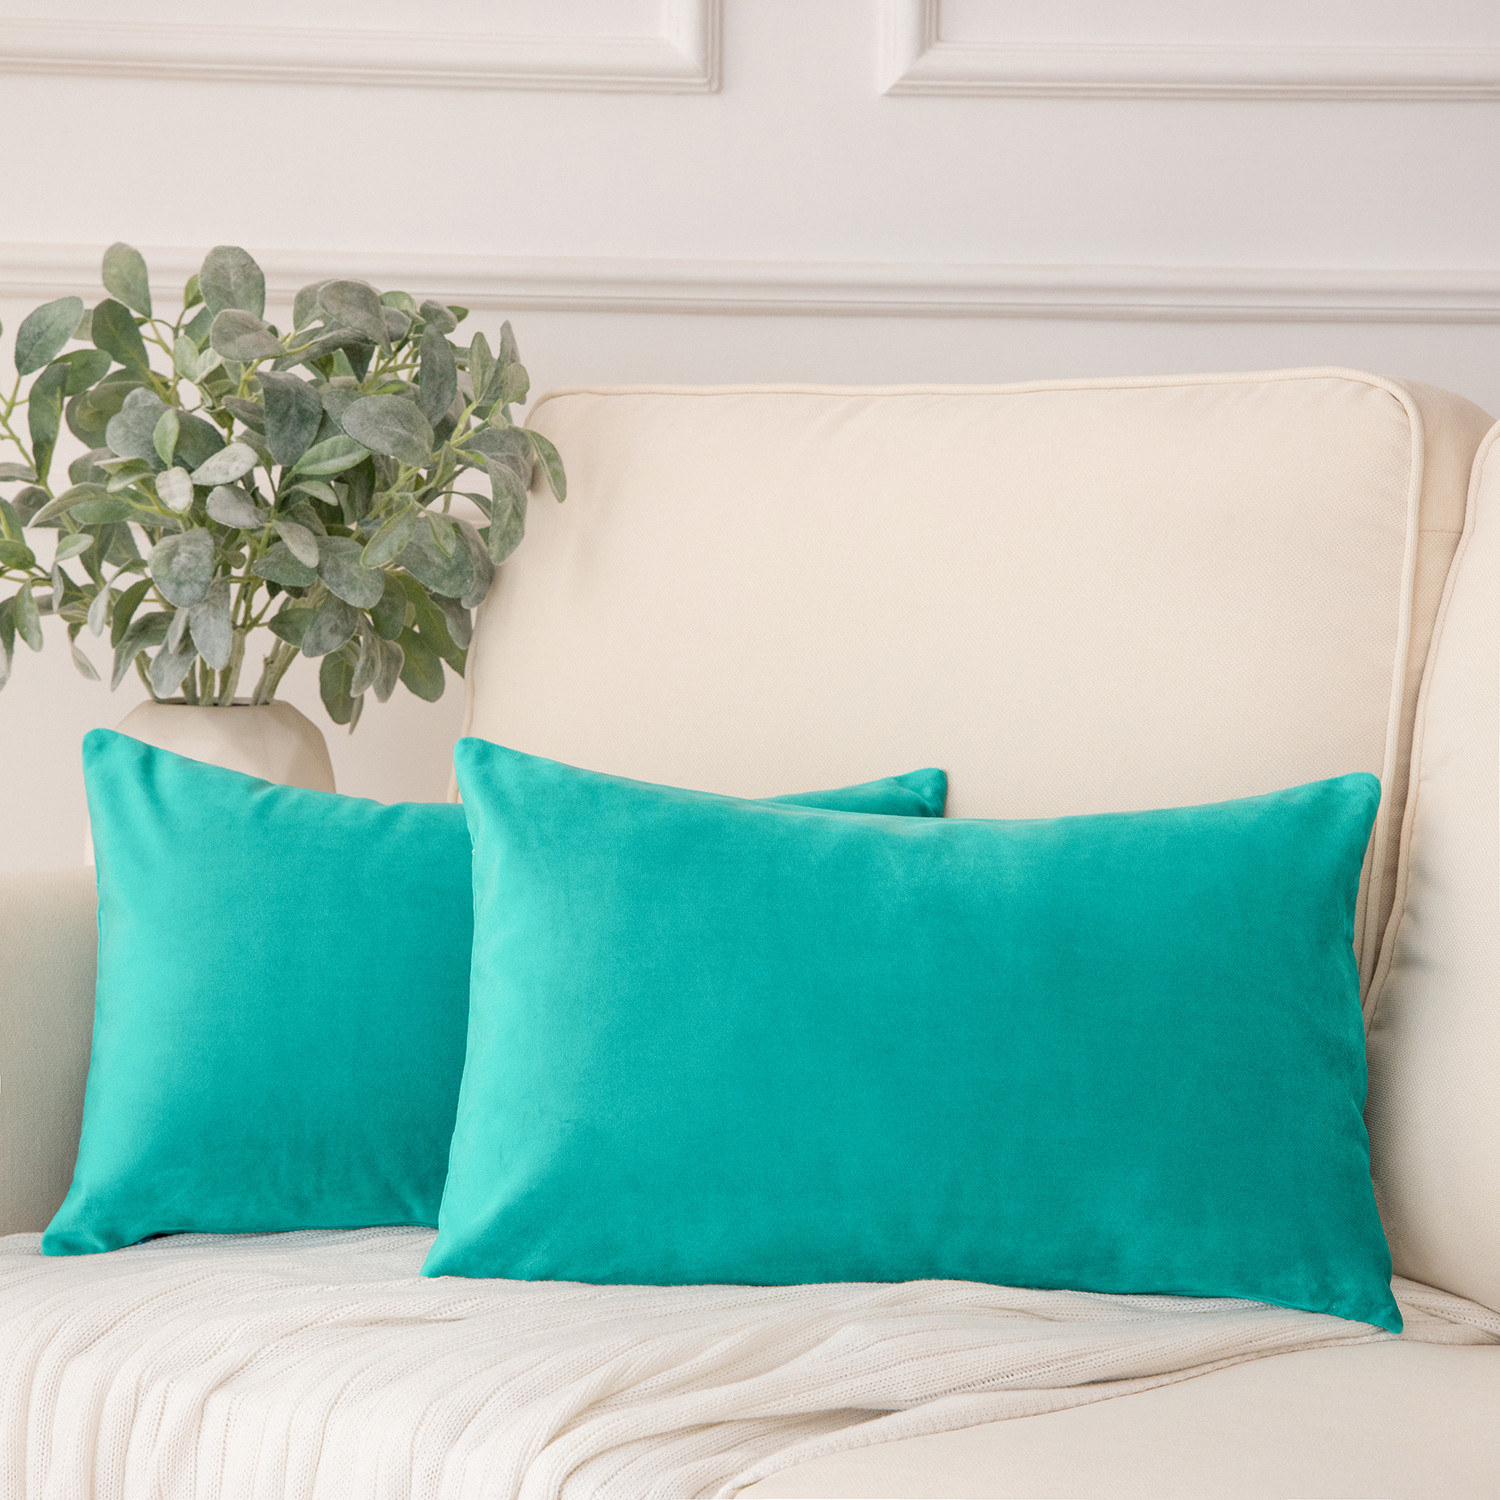 The turquoise pillow